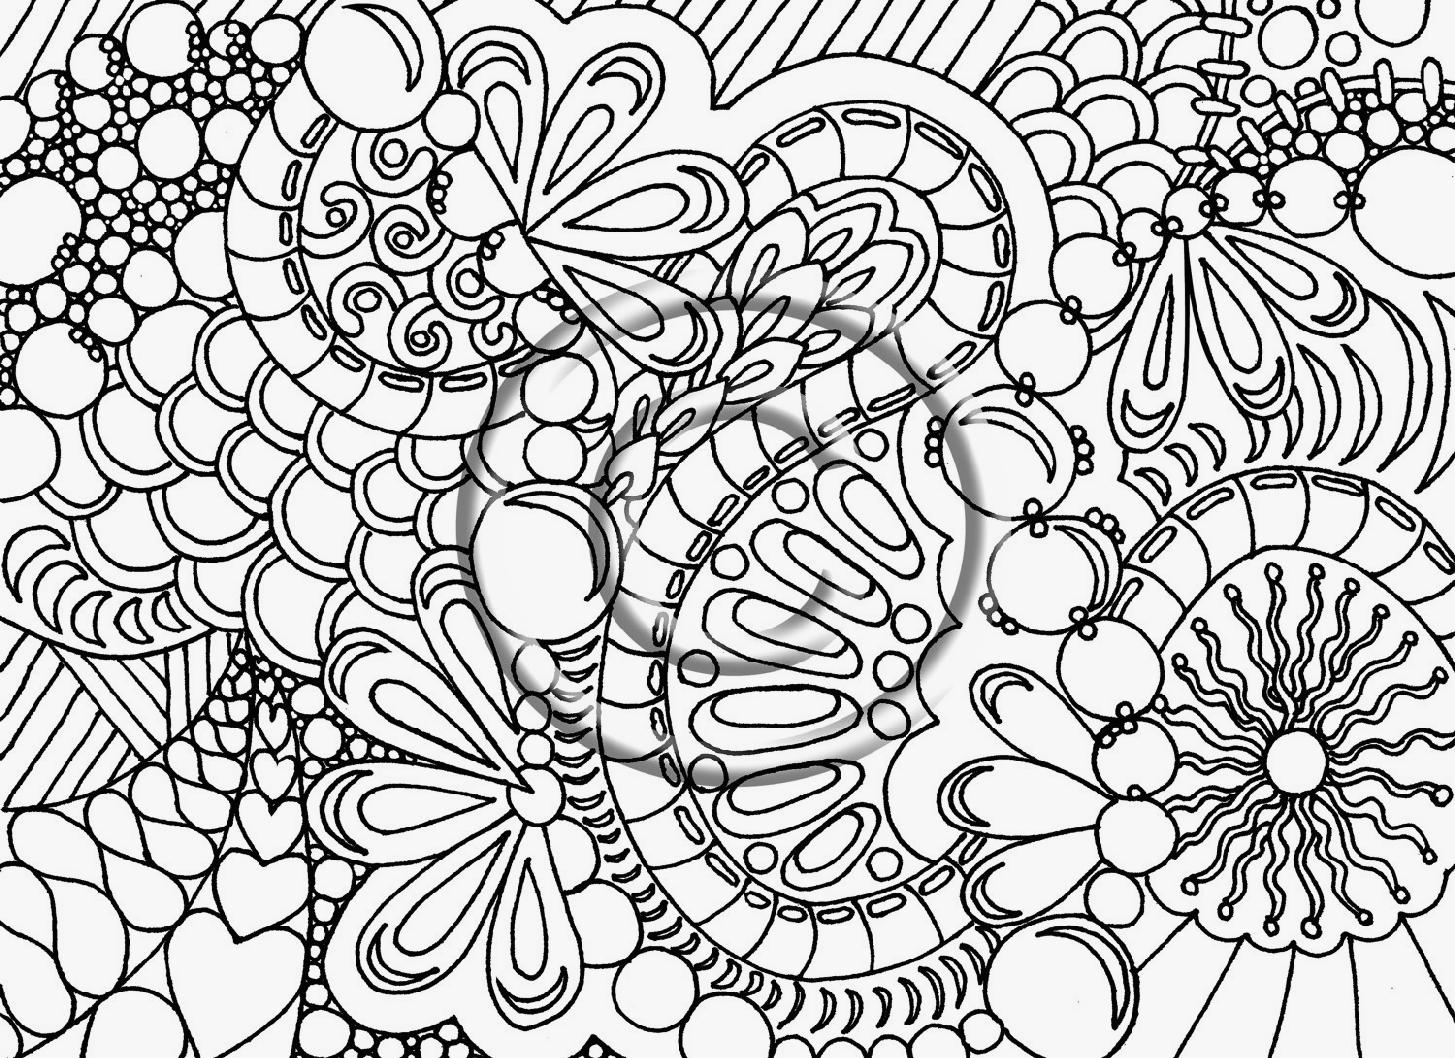 Colouring in sheet adults - Coloring Pages Adult Coloring Pages Paisley Hearts And Flowers Free Printable Coloring Pages